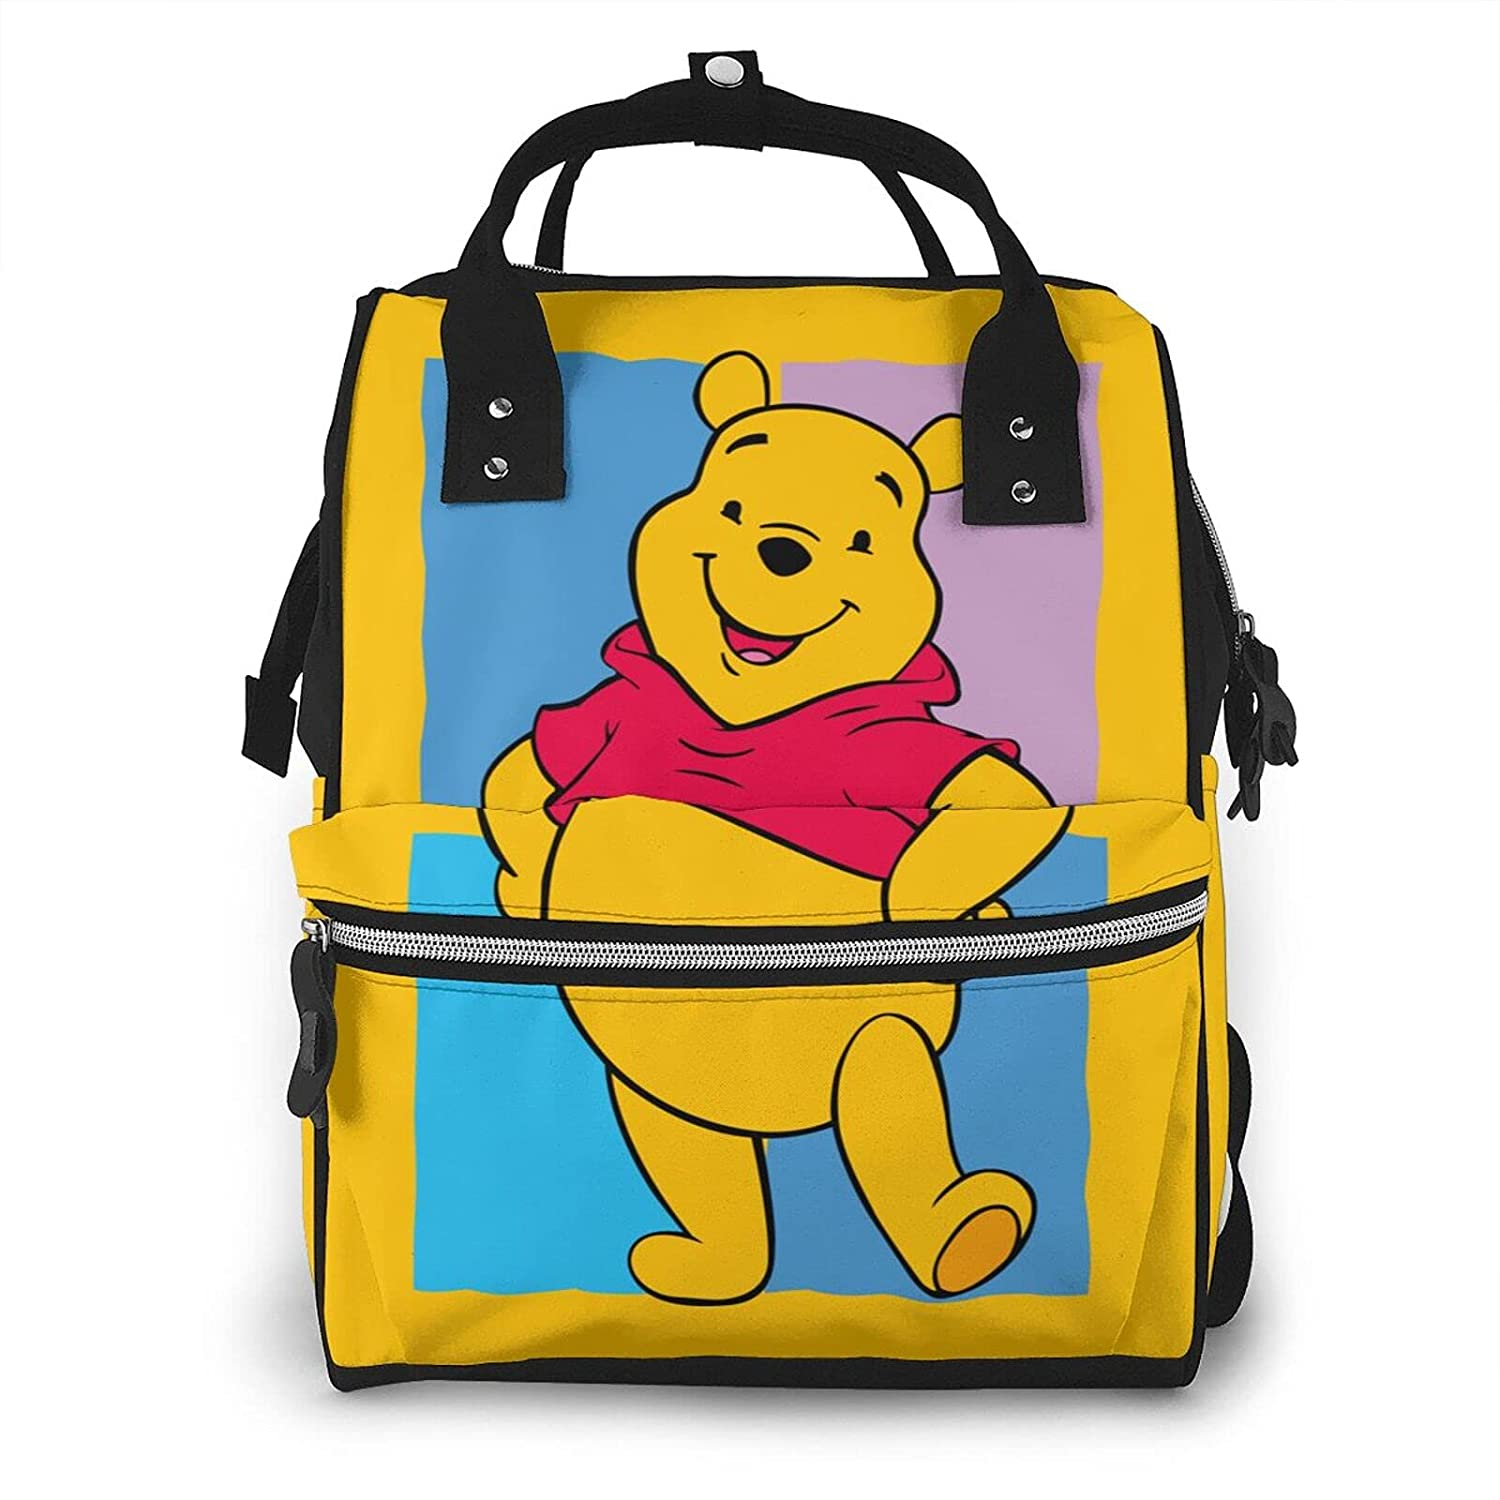 YUAKUOD Win-nie The-Pooh Diaper Bags Mummy Backpack Multi Functions Large Capacity Nappy Bag Nursing Bag Waterproof Durable & Stylish for Woman and Men Baby Bag